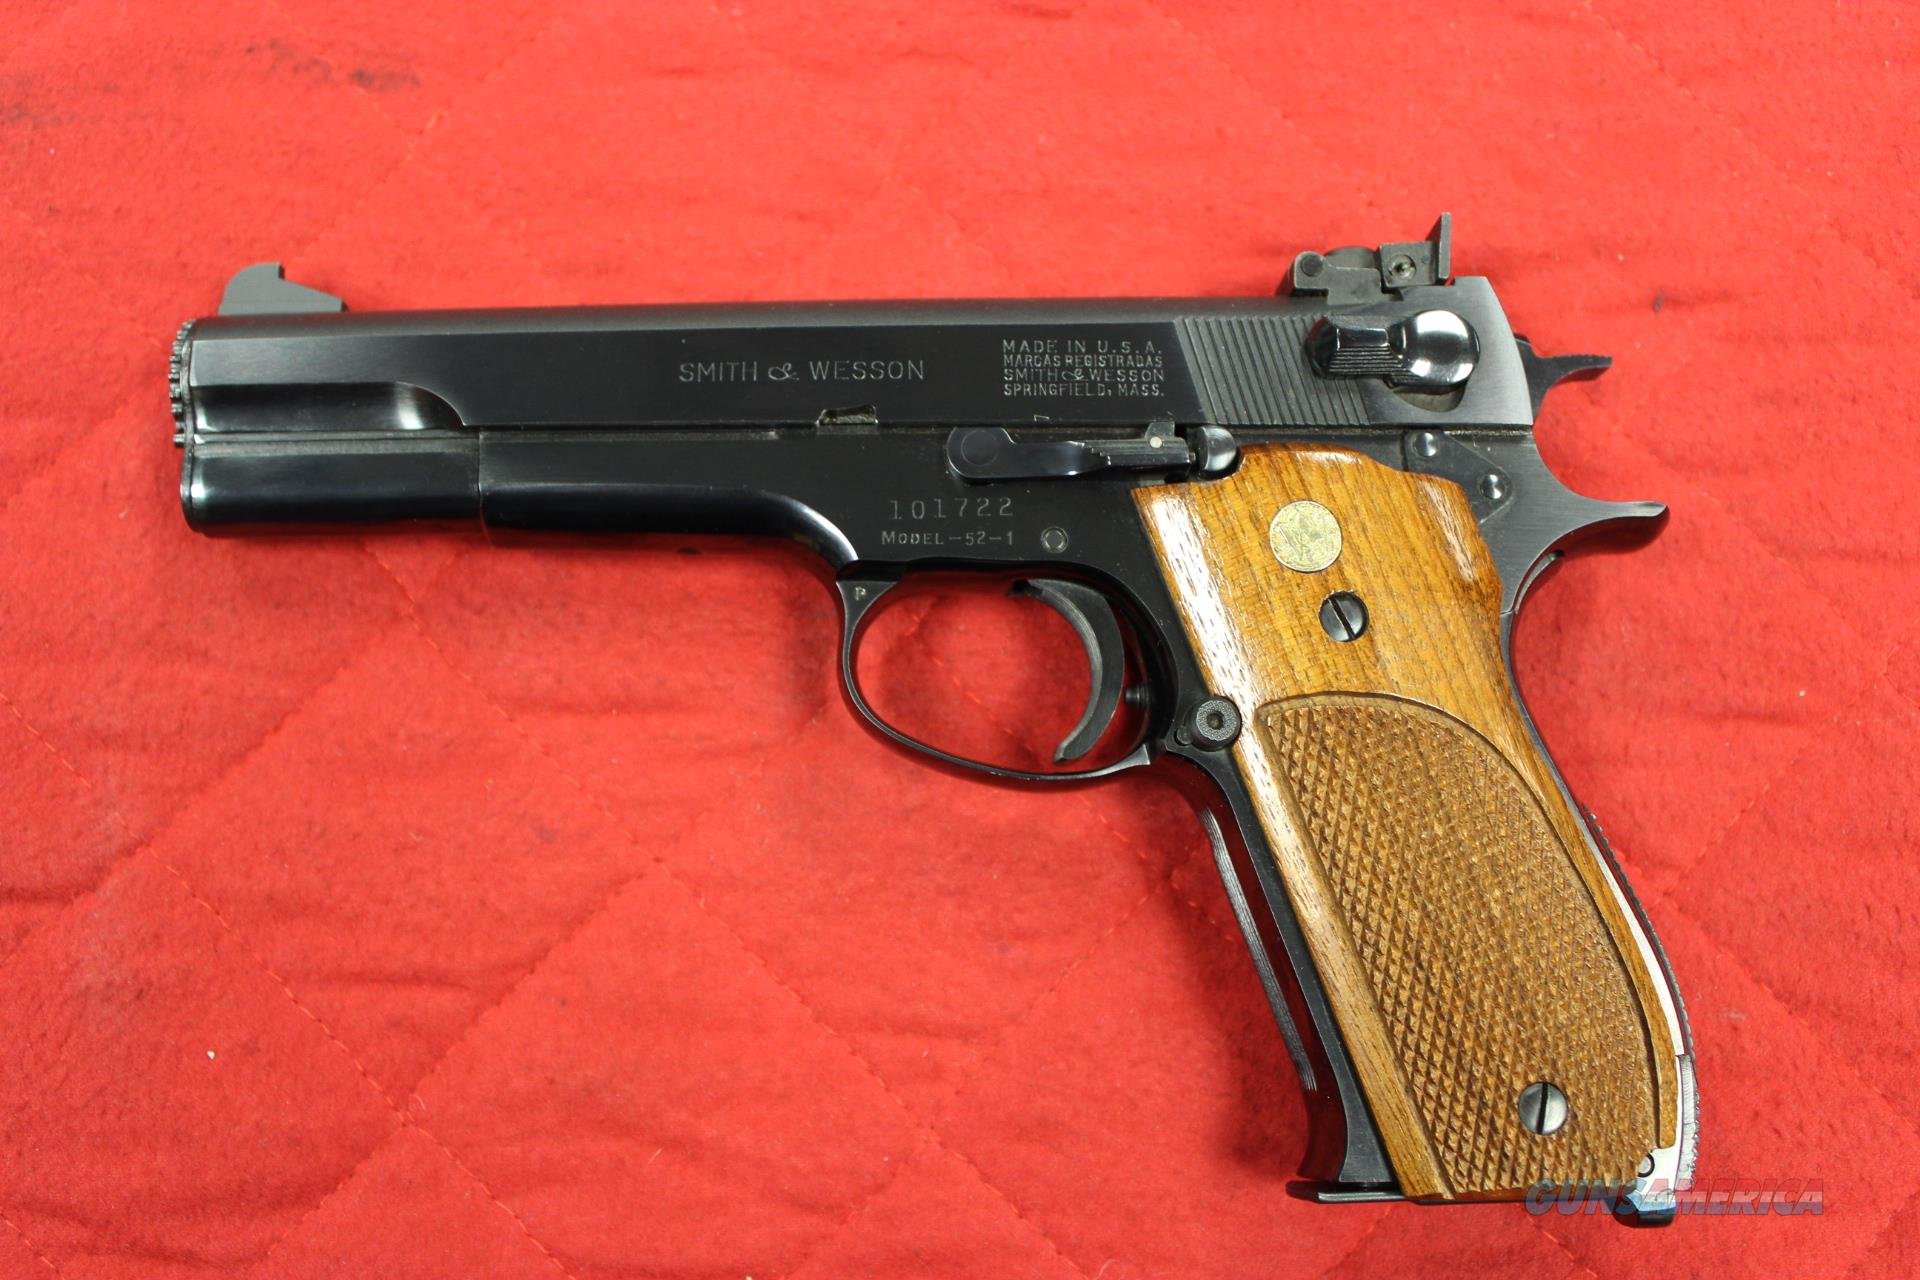 SMITH AND WESSON 52-1 WITH TWO MAGAZINES  Guns > Pistols > Smith & Wesson Pistols - Autos > Alloy Frame